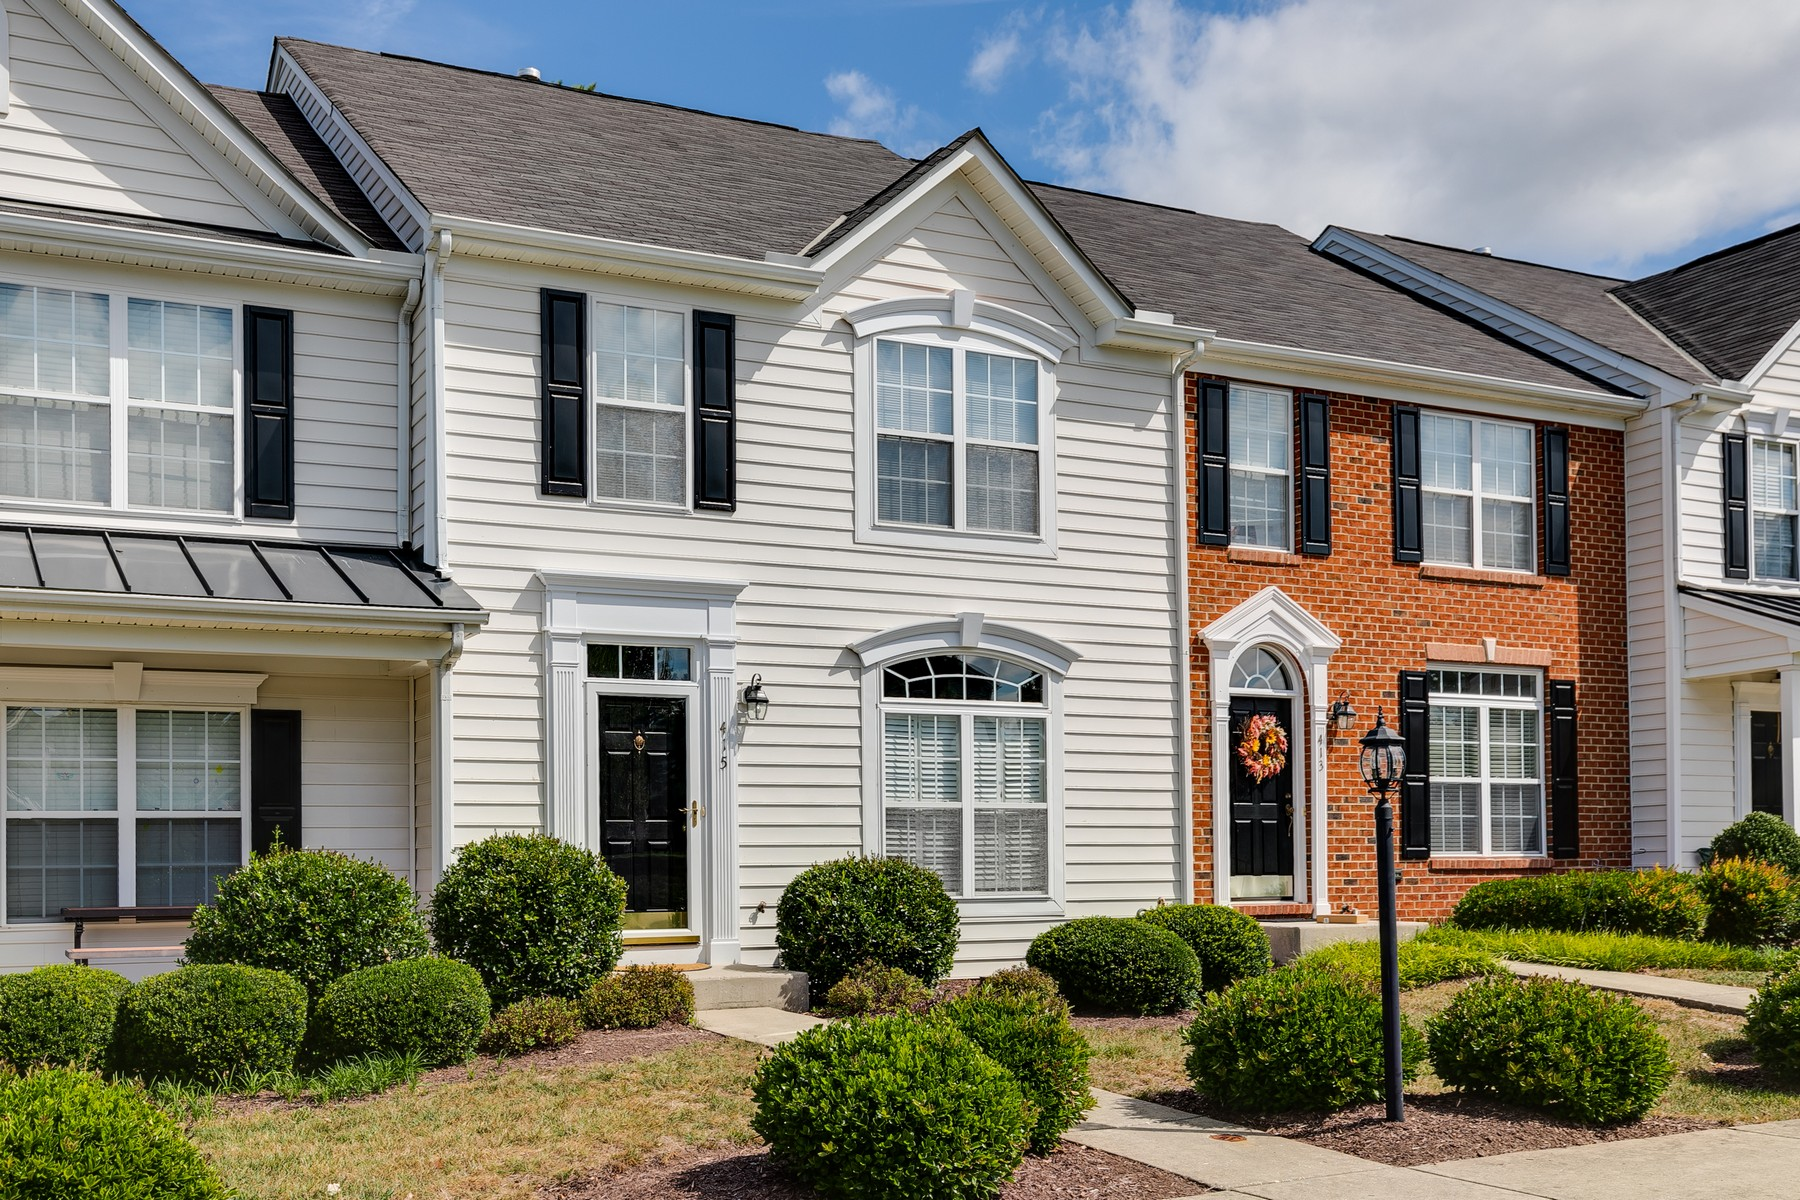 townhouses for Sale at Townes At Hunton Park 415 Kingscote Lane 415, Henrico, Virginia 23059 United States